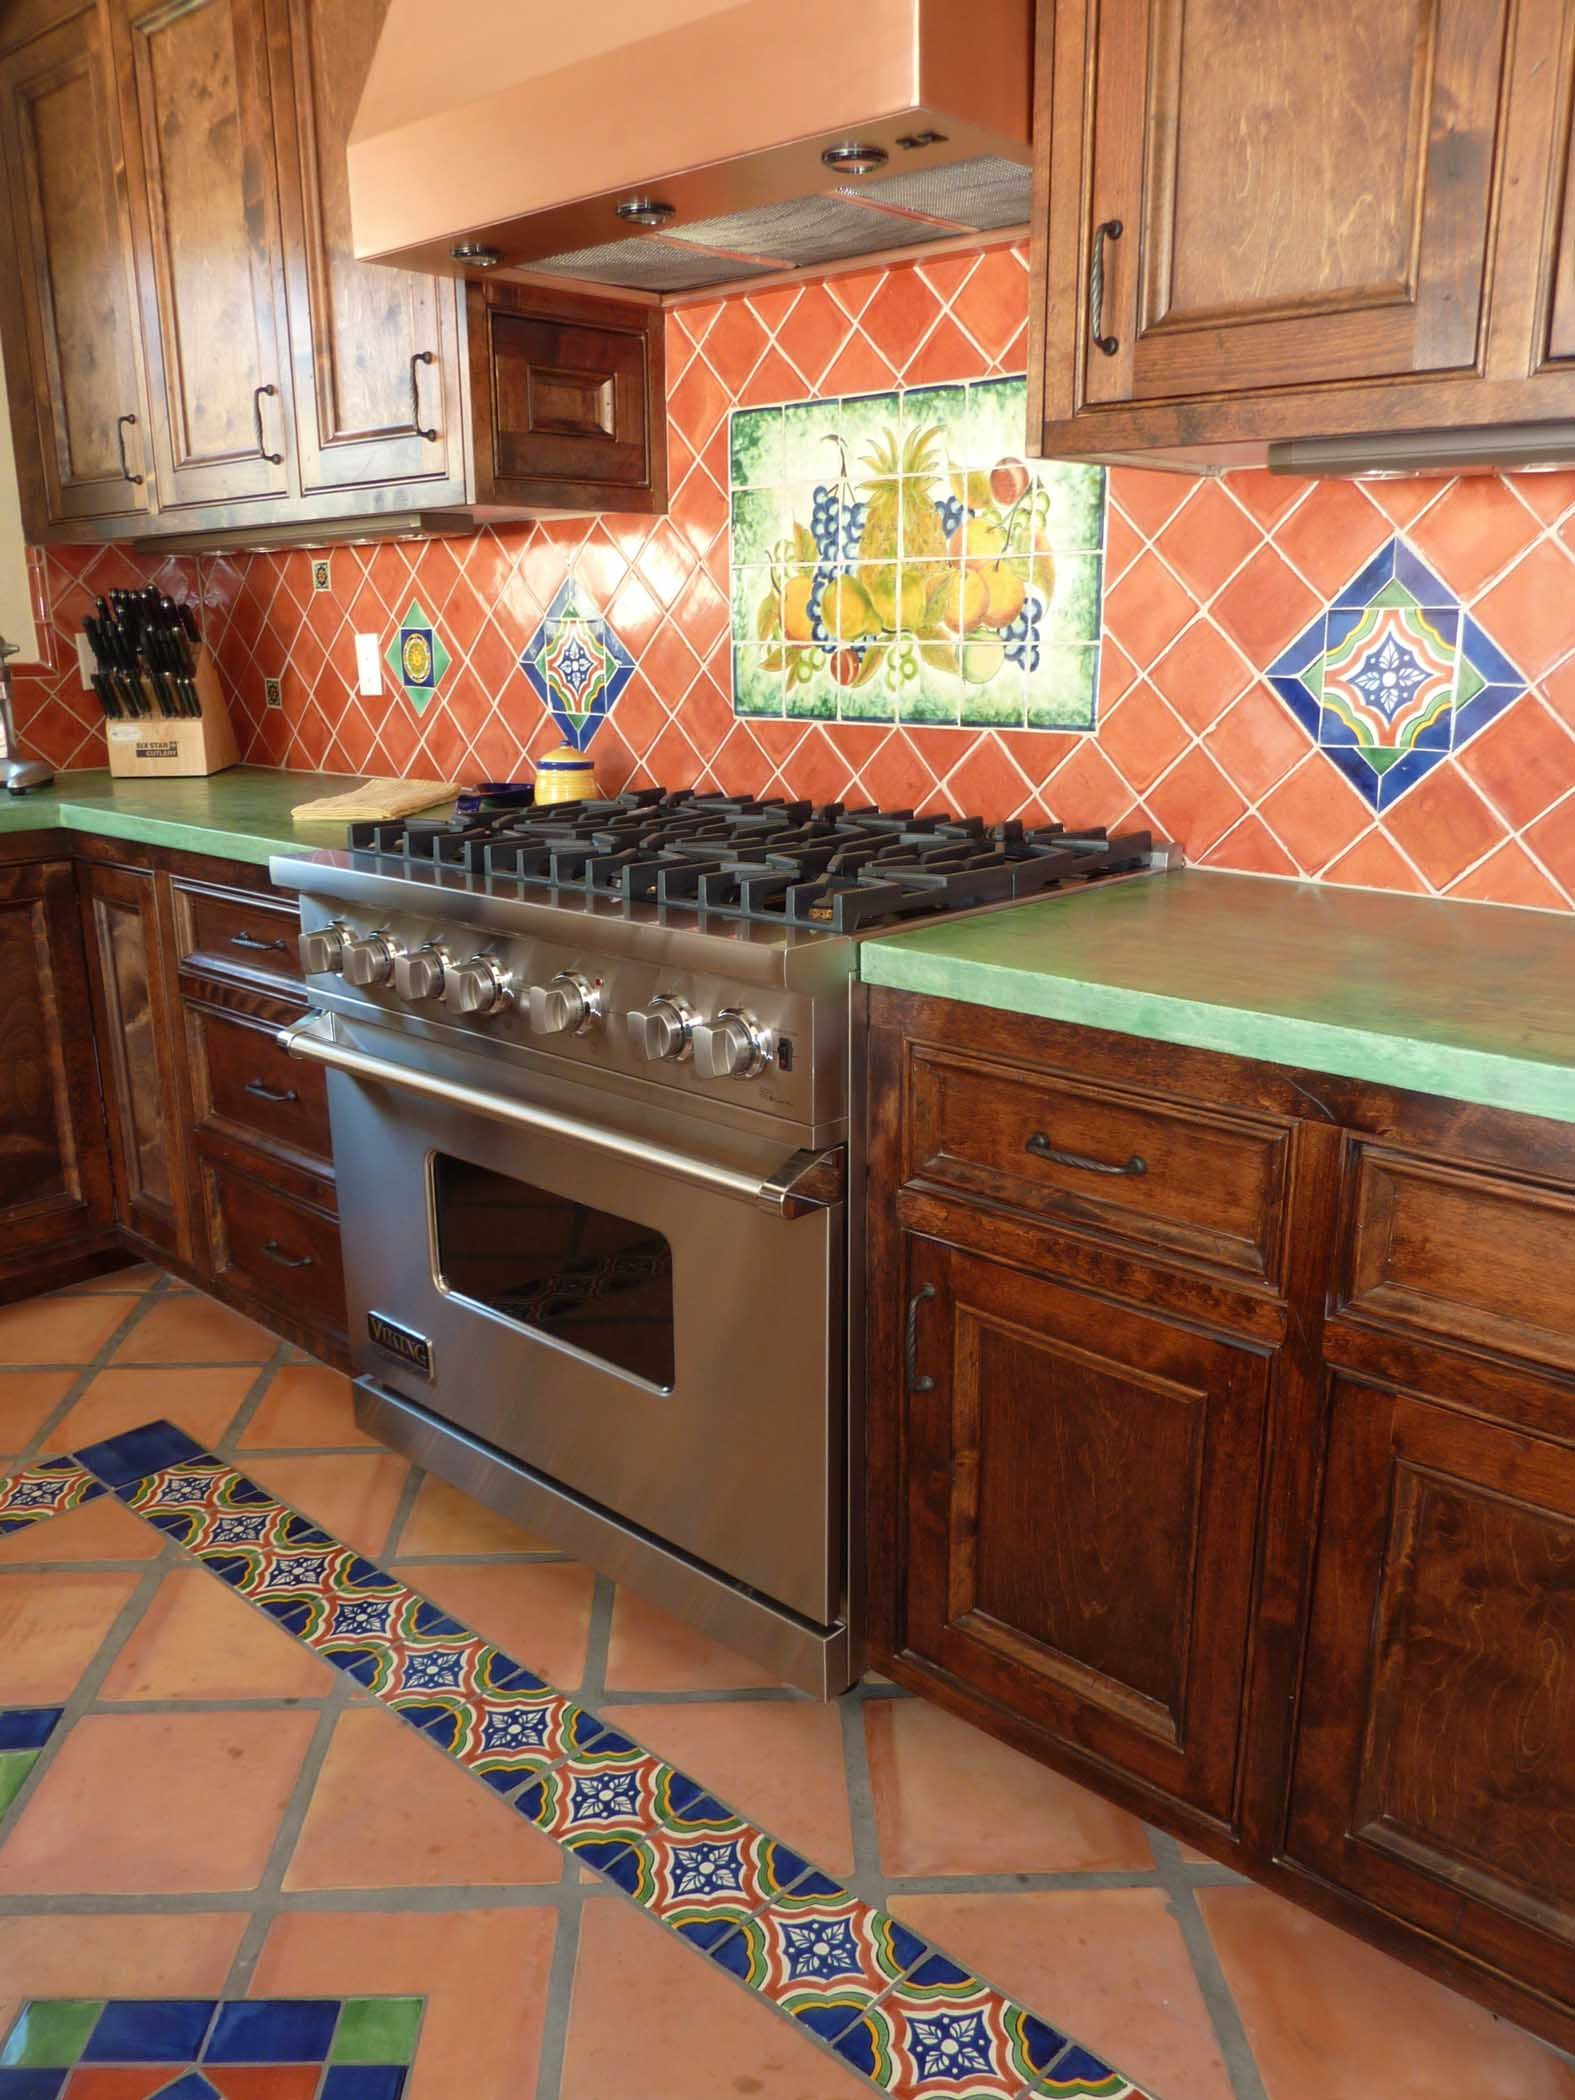 Kitchen remodel using mexican tiles by kristiblackdesigns for Spanish style kitchen backsplash